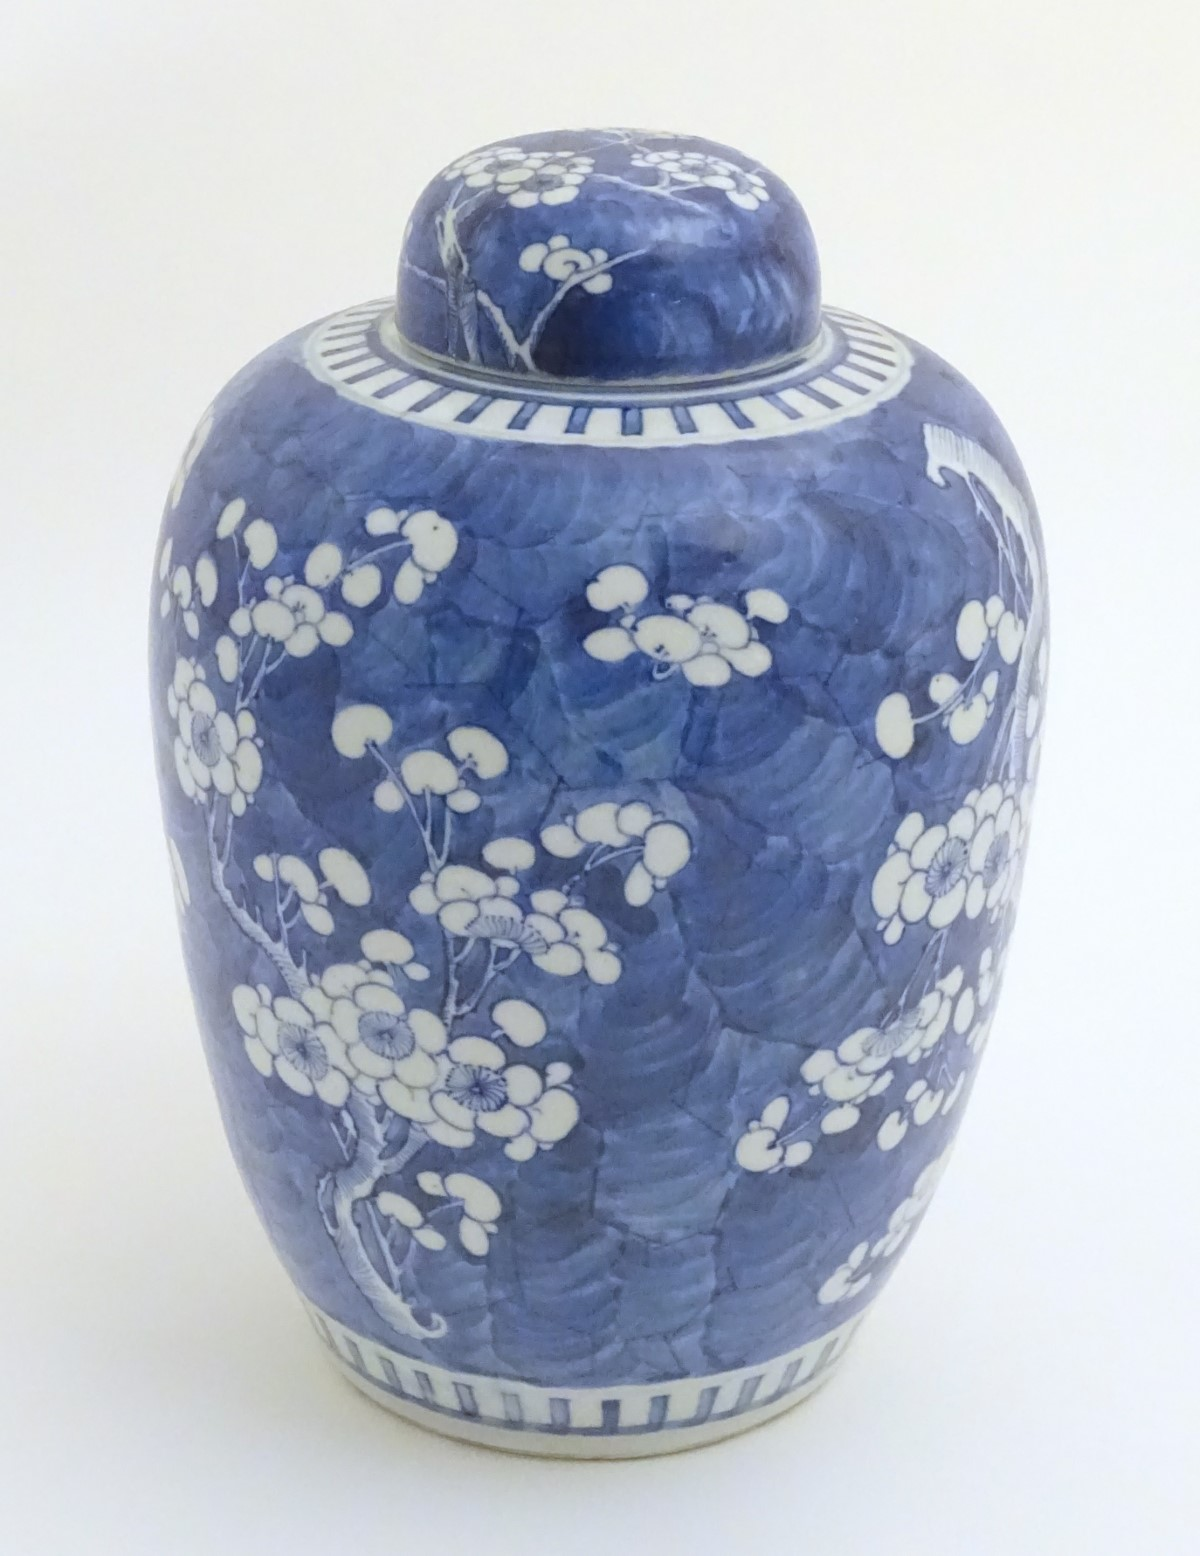 Lot 25 - A Chinese blue and white ginger jar and cover with prunus blossom decoration.